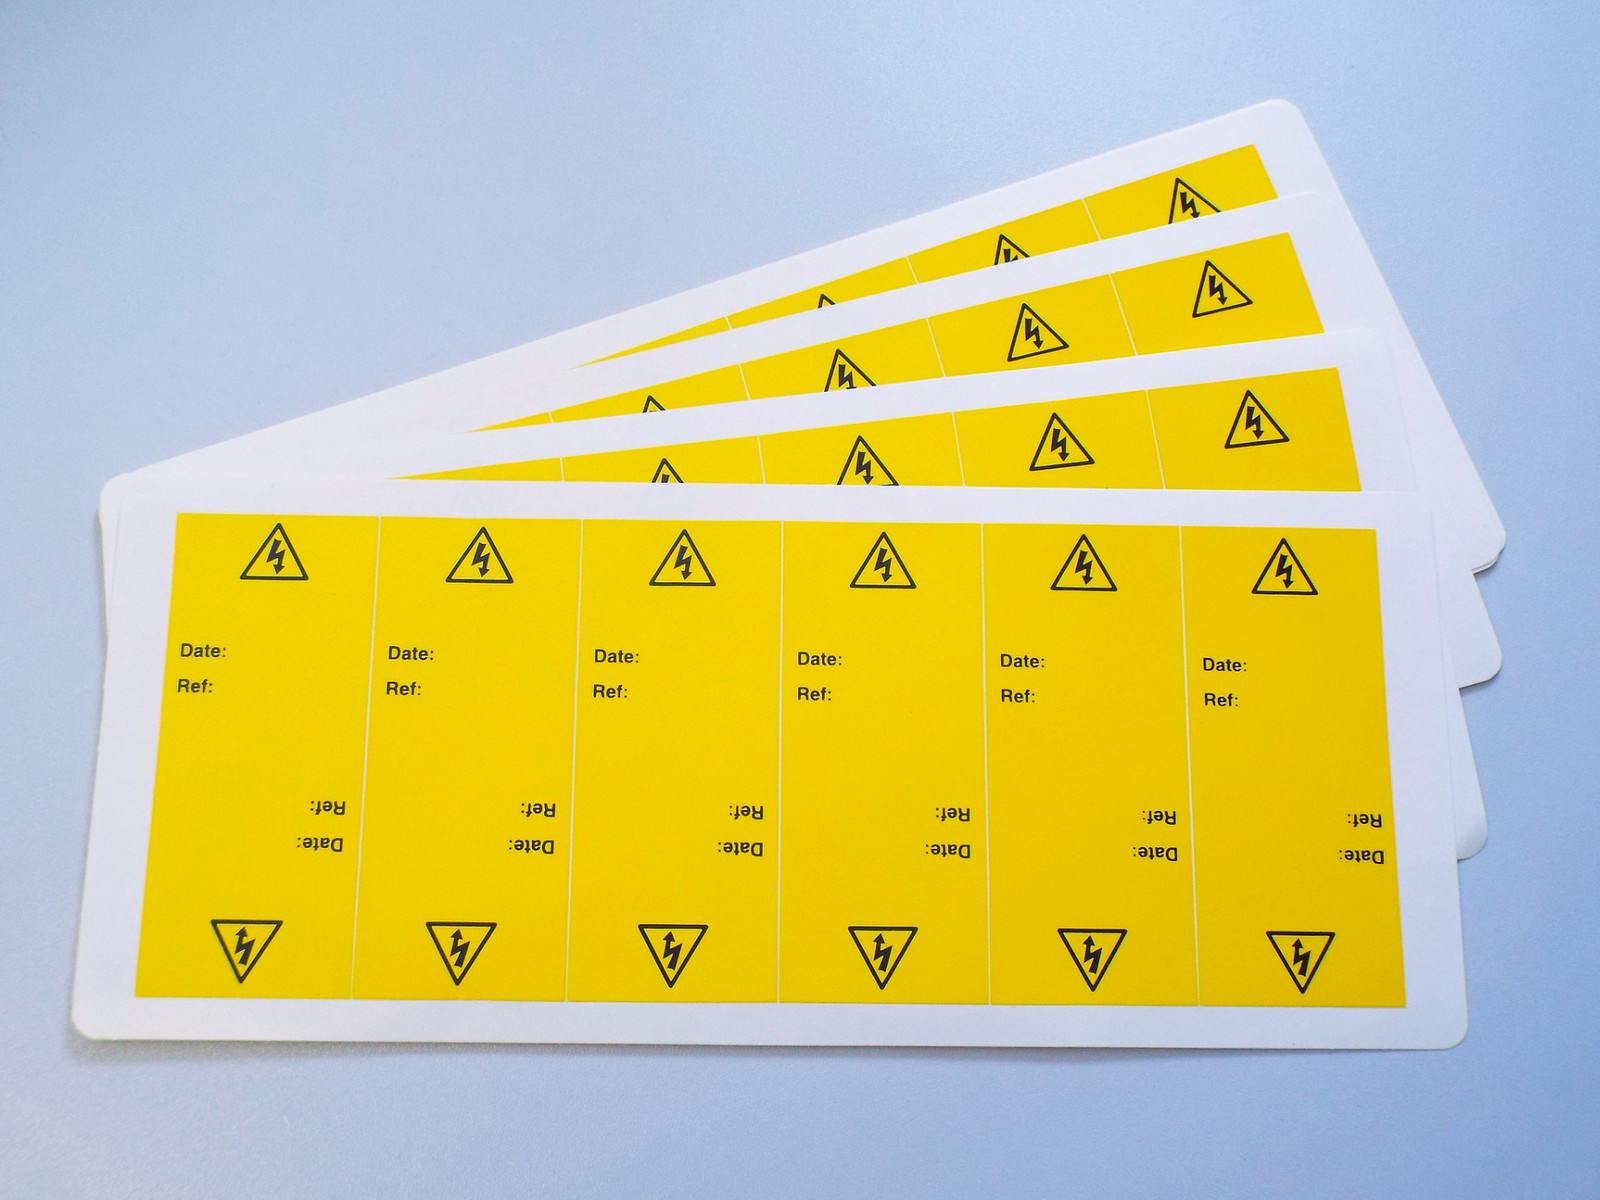 Electrical Wiring Labels - $15.30 - $37.96